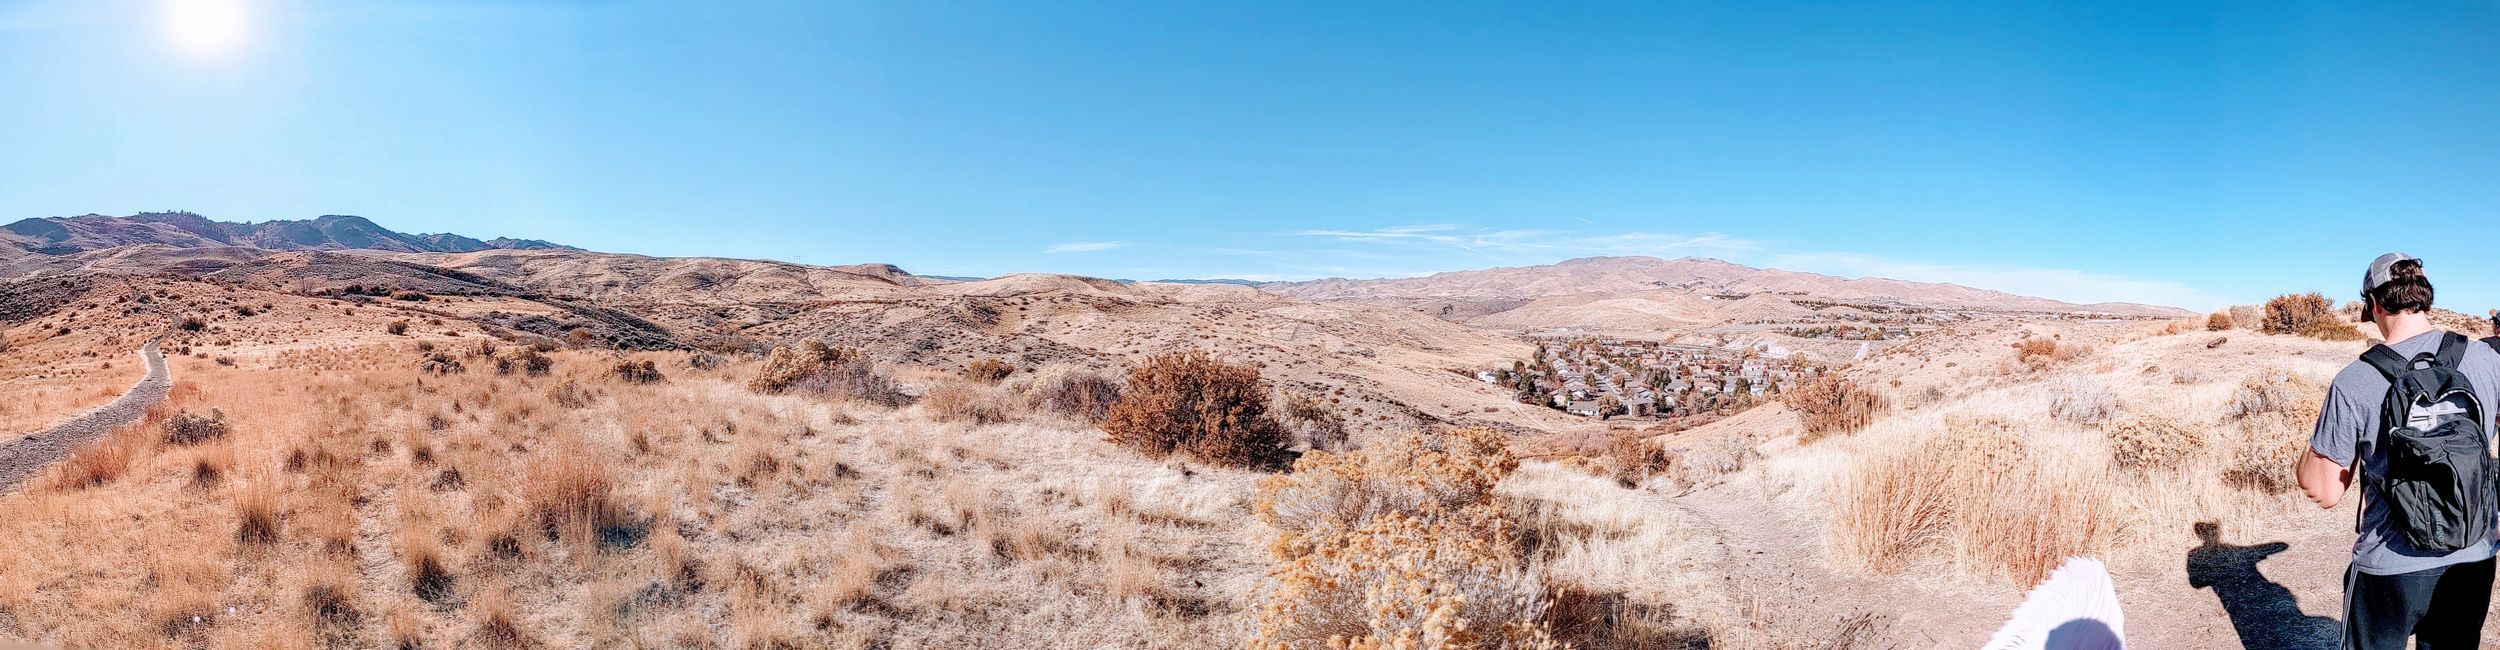 Panoramic photo taken from the top of a hiking trail overlooking Reno, Nevada